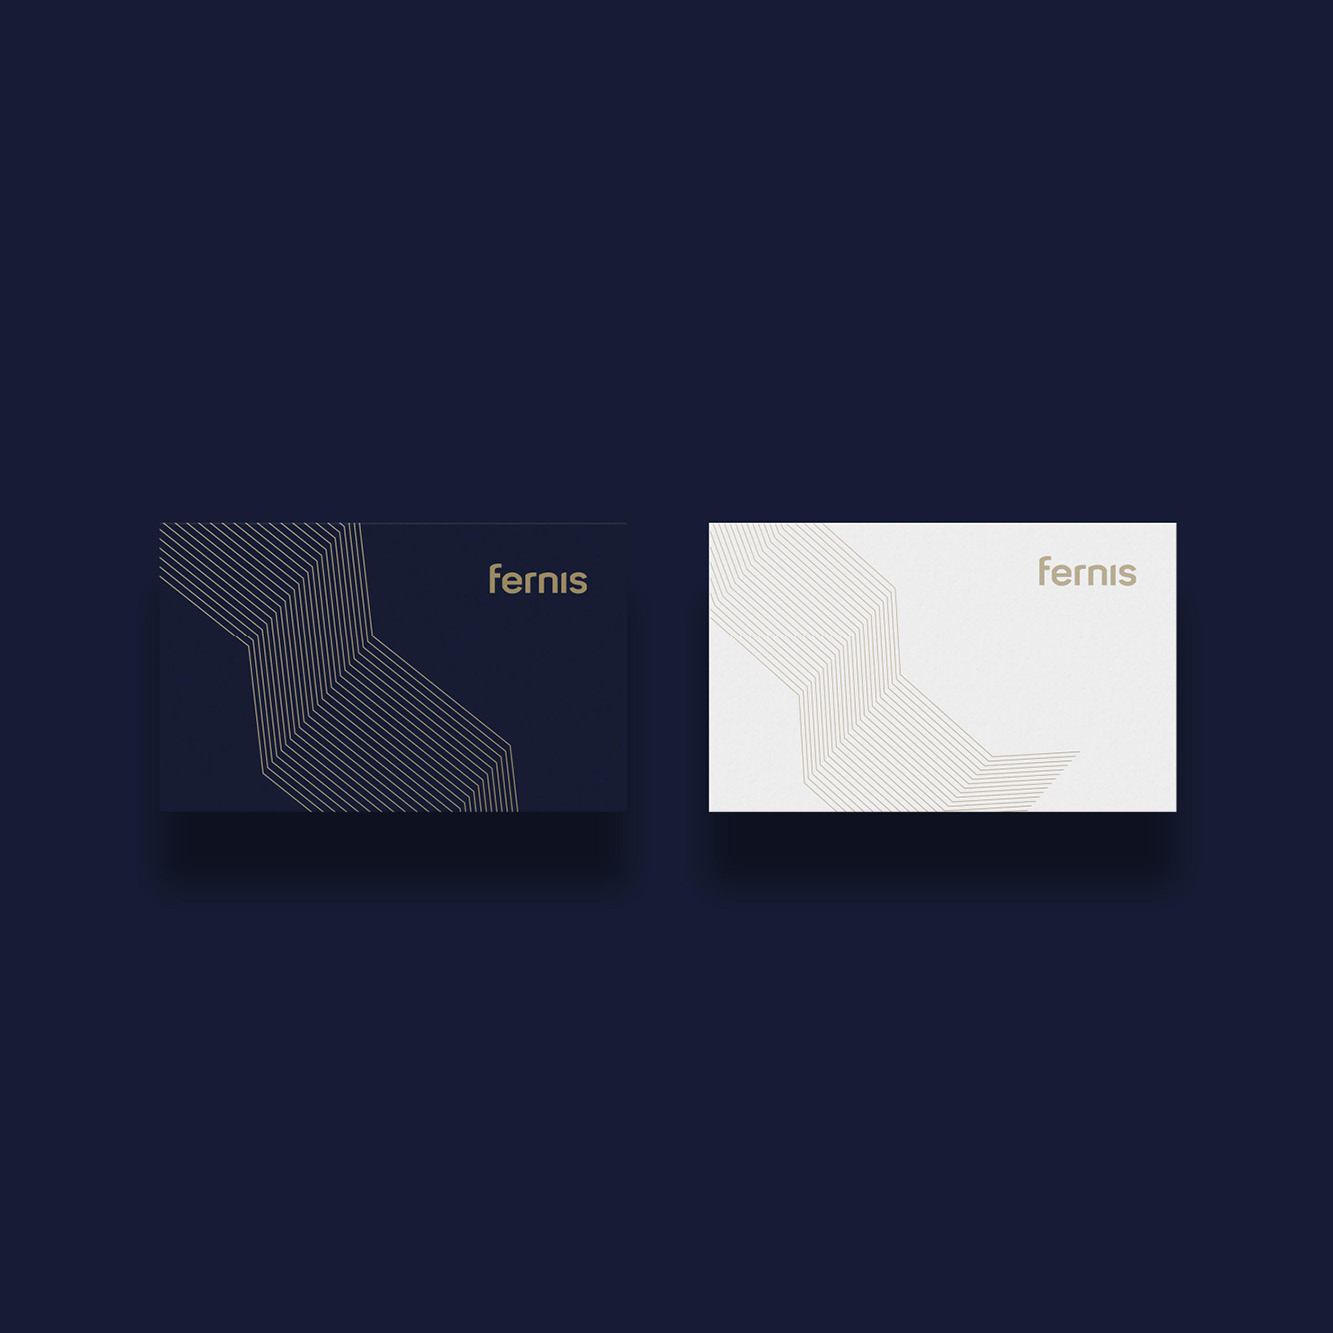 Showing the intro animation and how a business card looks